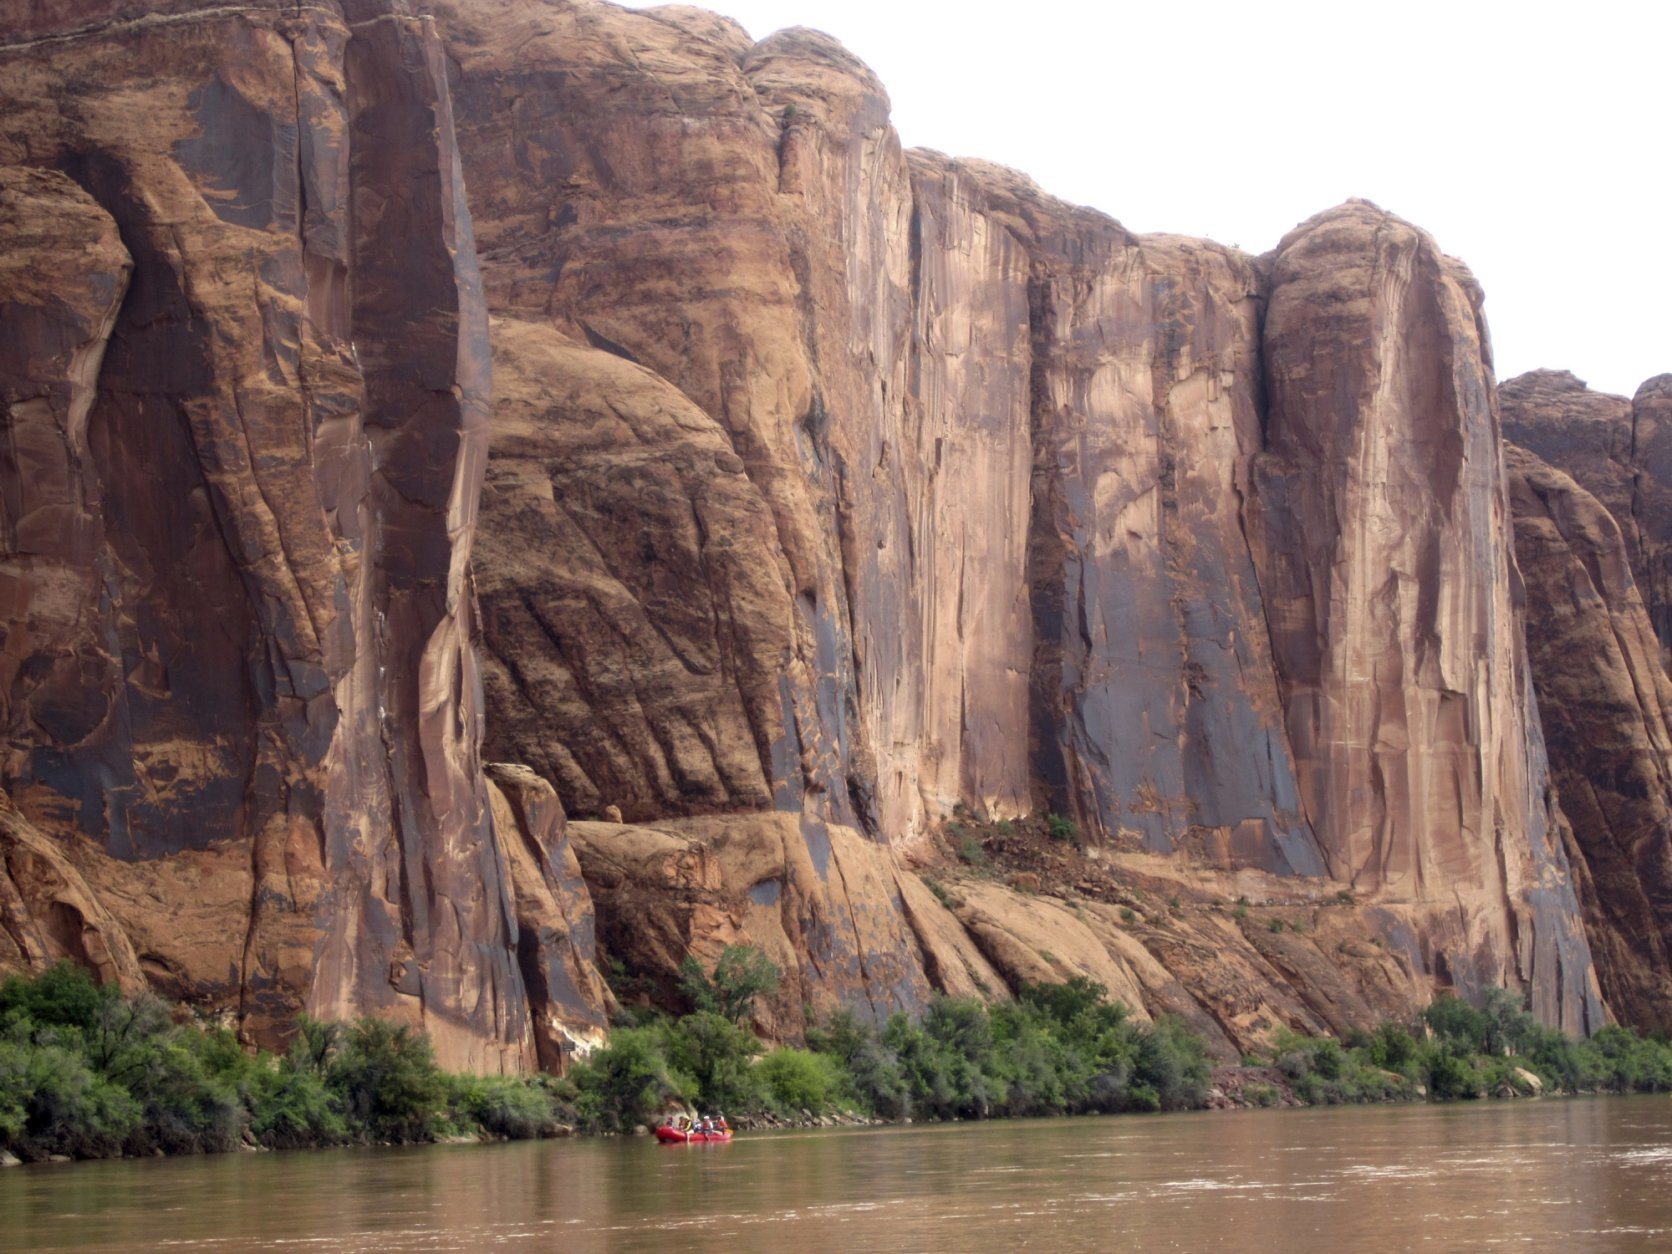 FILE - In this July 25, 2017, file photo, rafters float down the Colorado River near Moab, Utah. Rivers are drying up, popular mountain recreation spots are closing and water restrictions are in full swing as a persistent drought intensifies its grip on pockets of the American Southwest. Climatologists and other experts are scheduled Wednesday, May 23, 2018, to provide an update on the situation in the Four Corners region - where Arizona, New Mexico, Colorado and Utah meet. (AP photo/Dan Elliott, File).